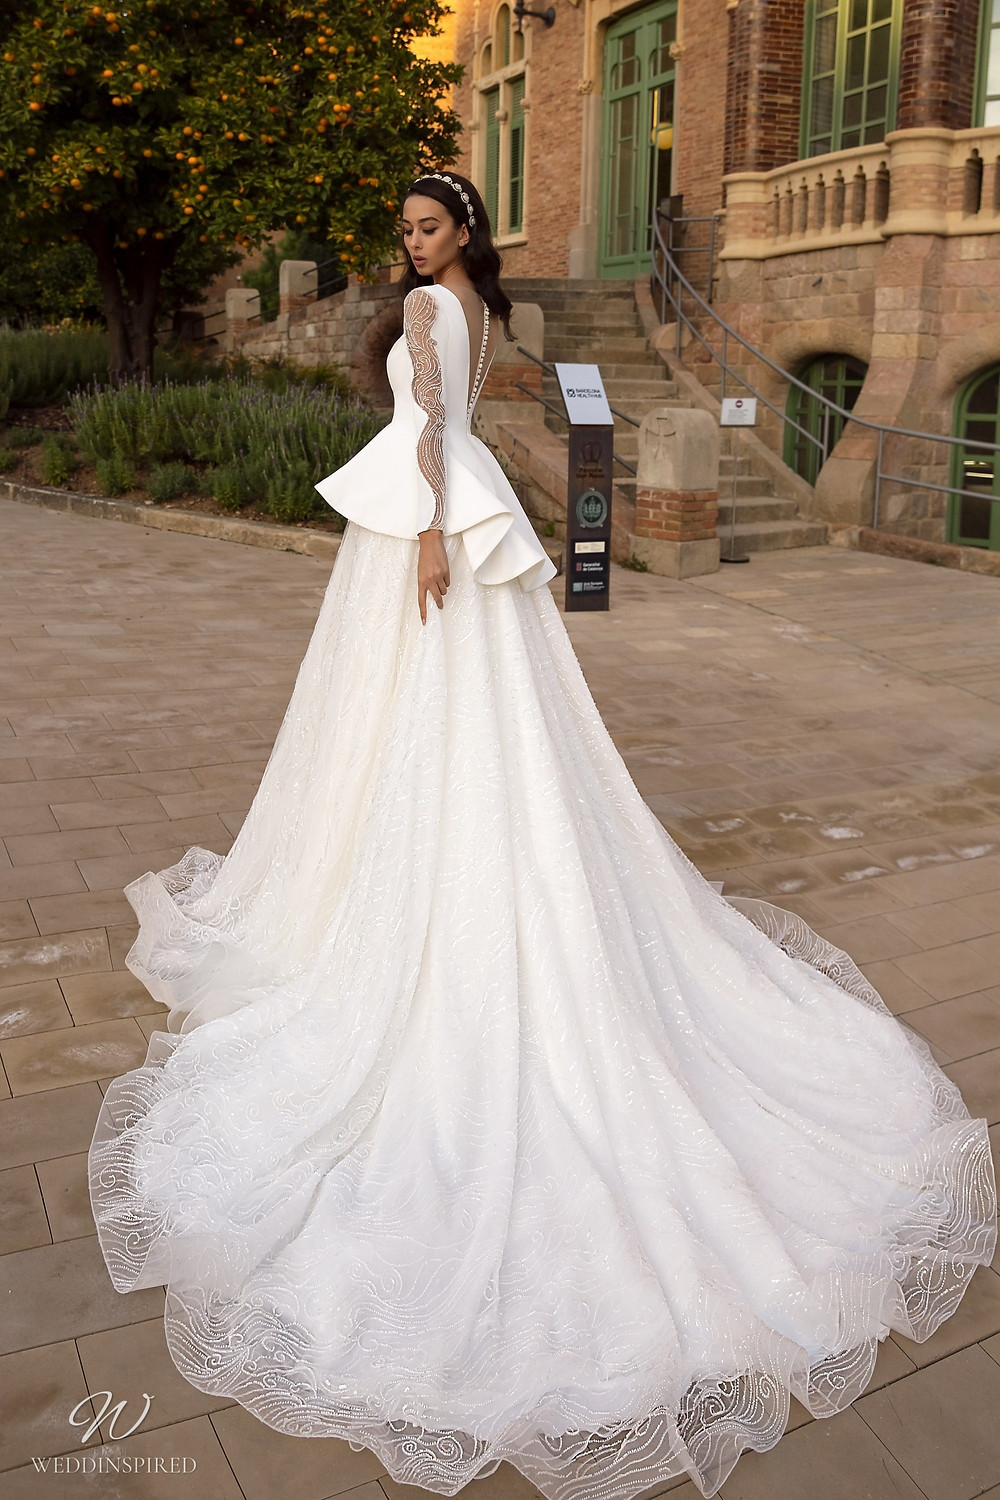 A Maks Mariano mesh princess ball gown wedding dress with long sleeves and a peplum